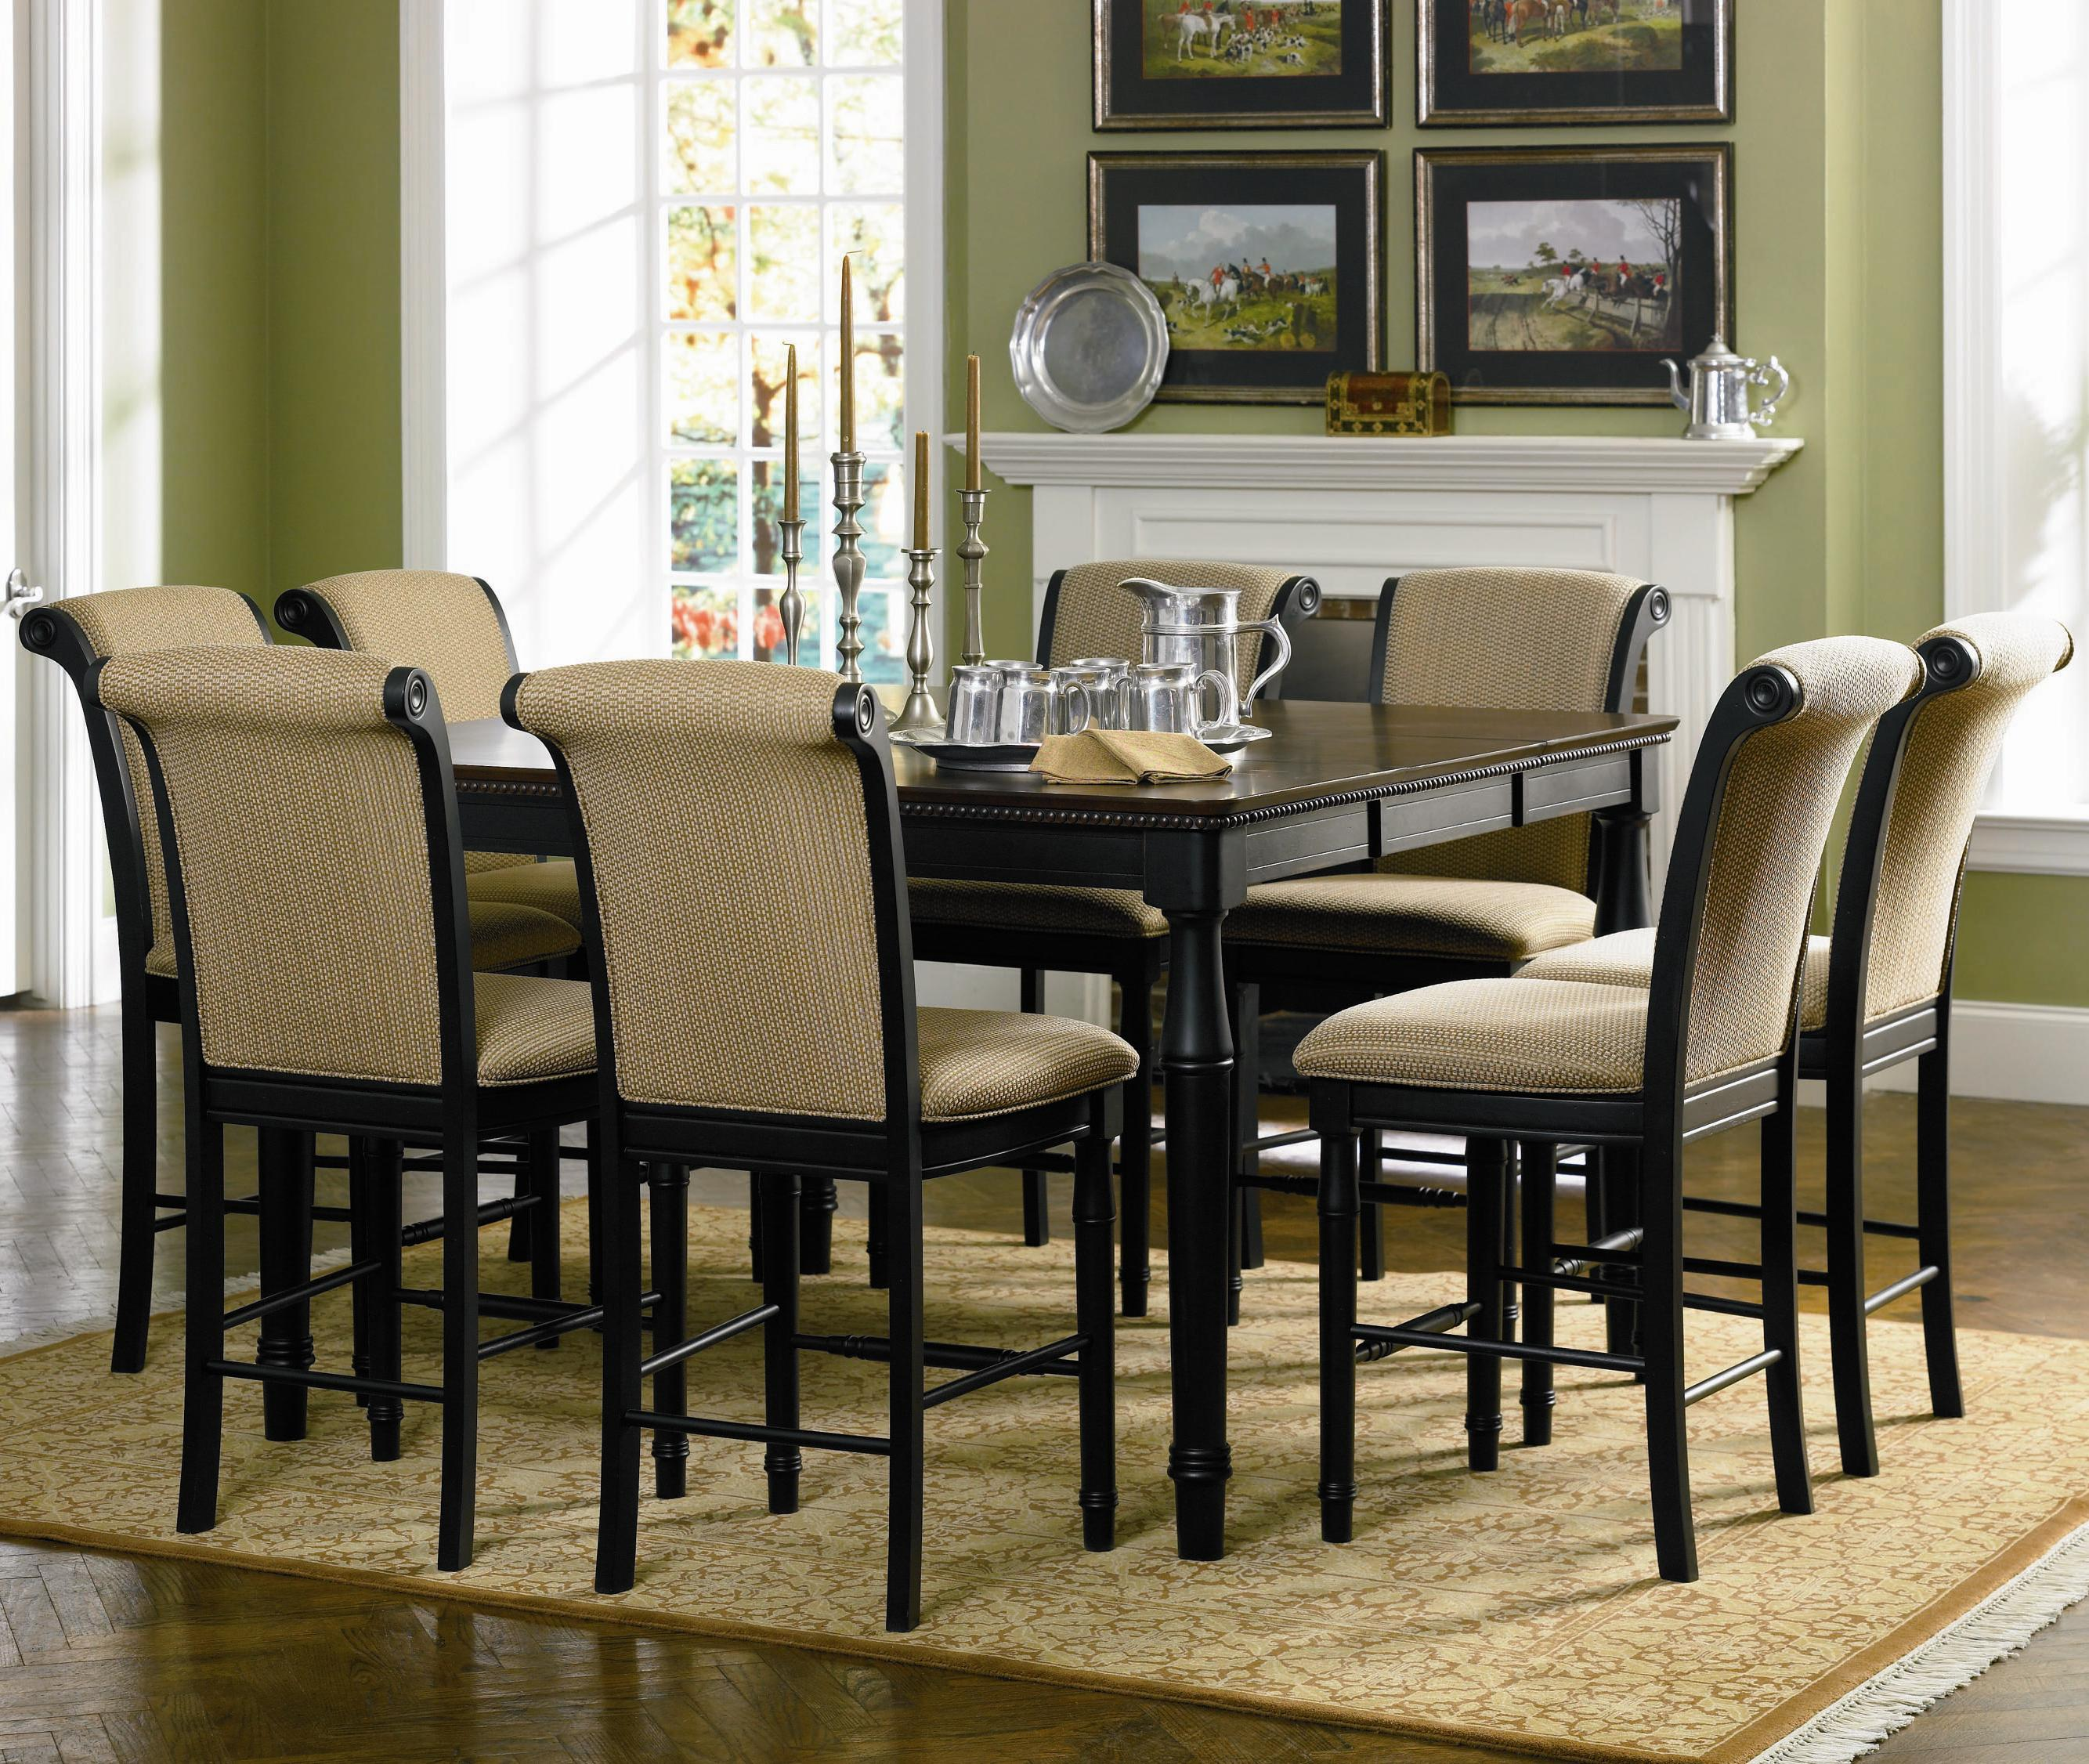 Coaster Cabrillo 9 Piece Counter Height Dining Set - Item Number 101828+8X9 & Coaster Cabrillo 9 Piece Counter Height Dining Set | Dunk u0026 Bright ...